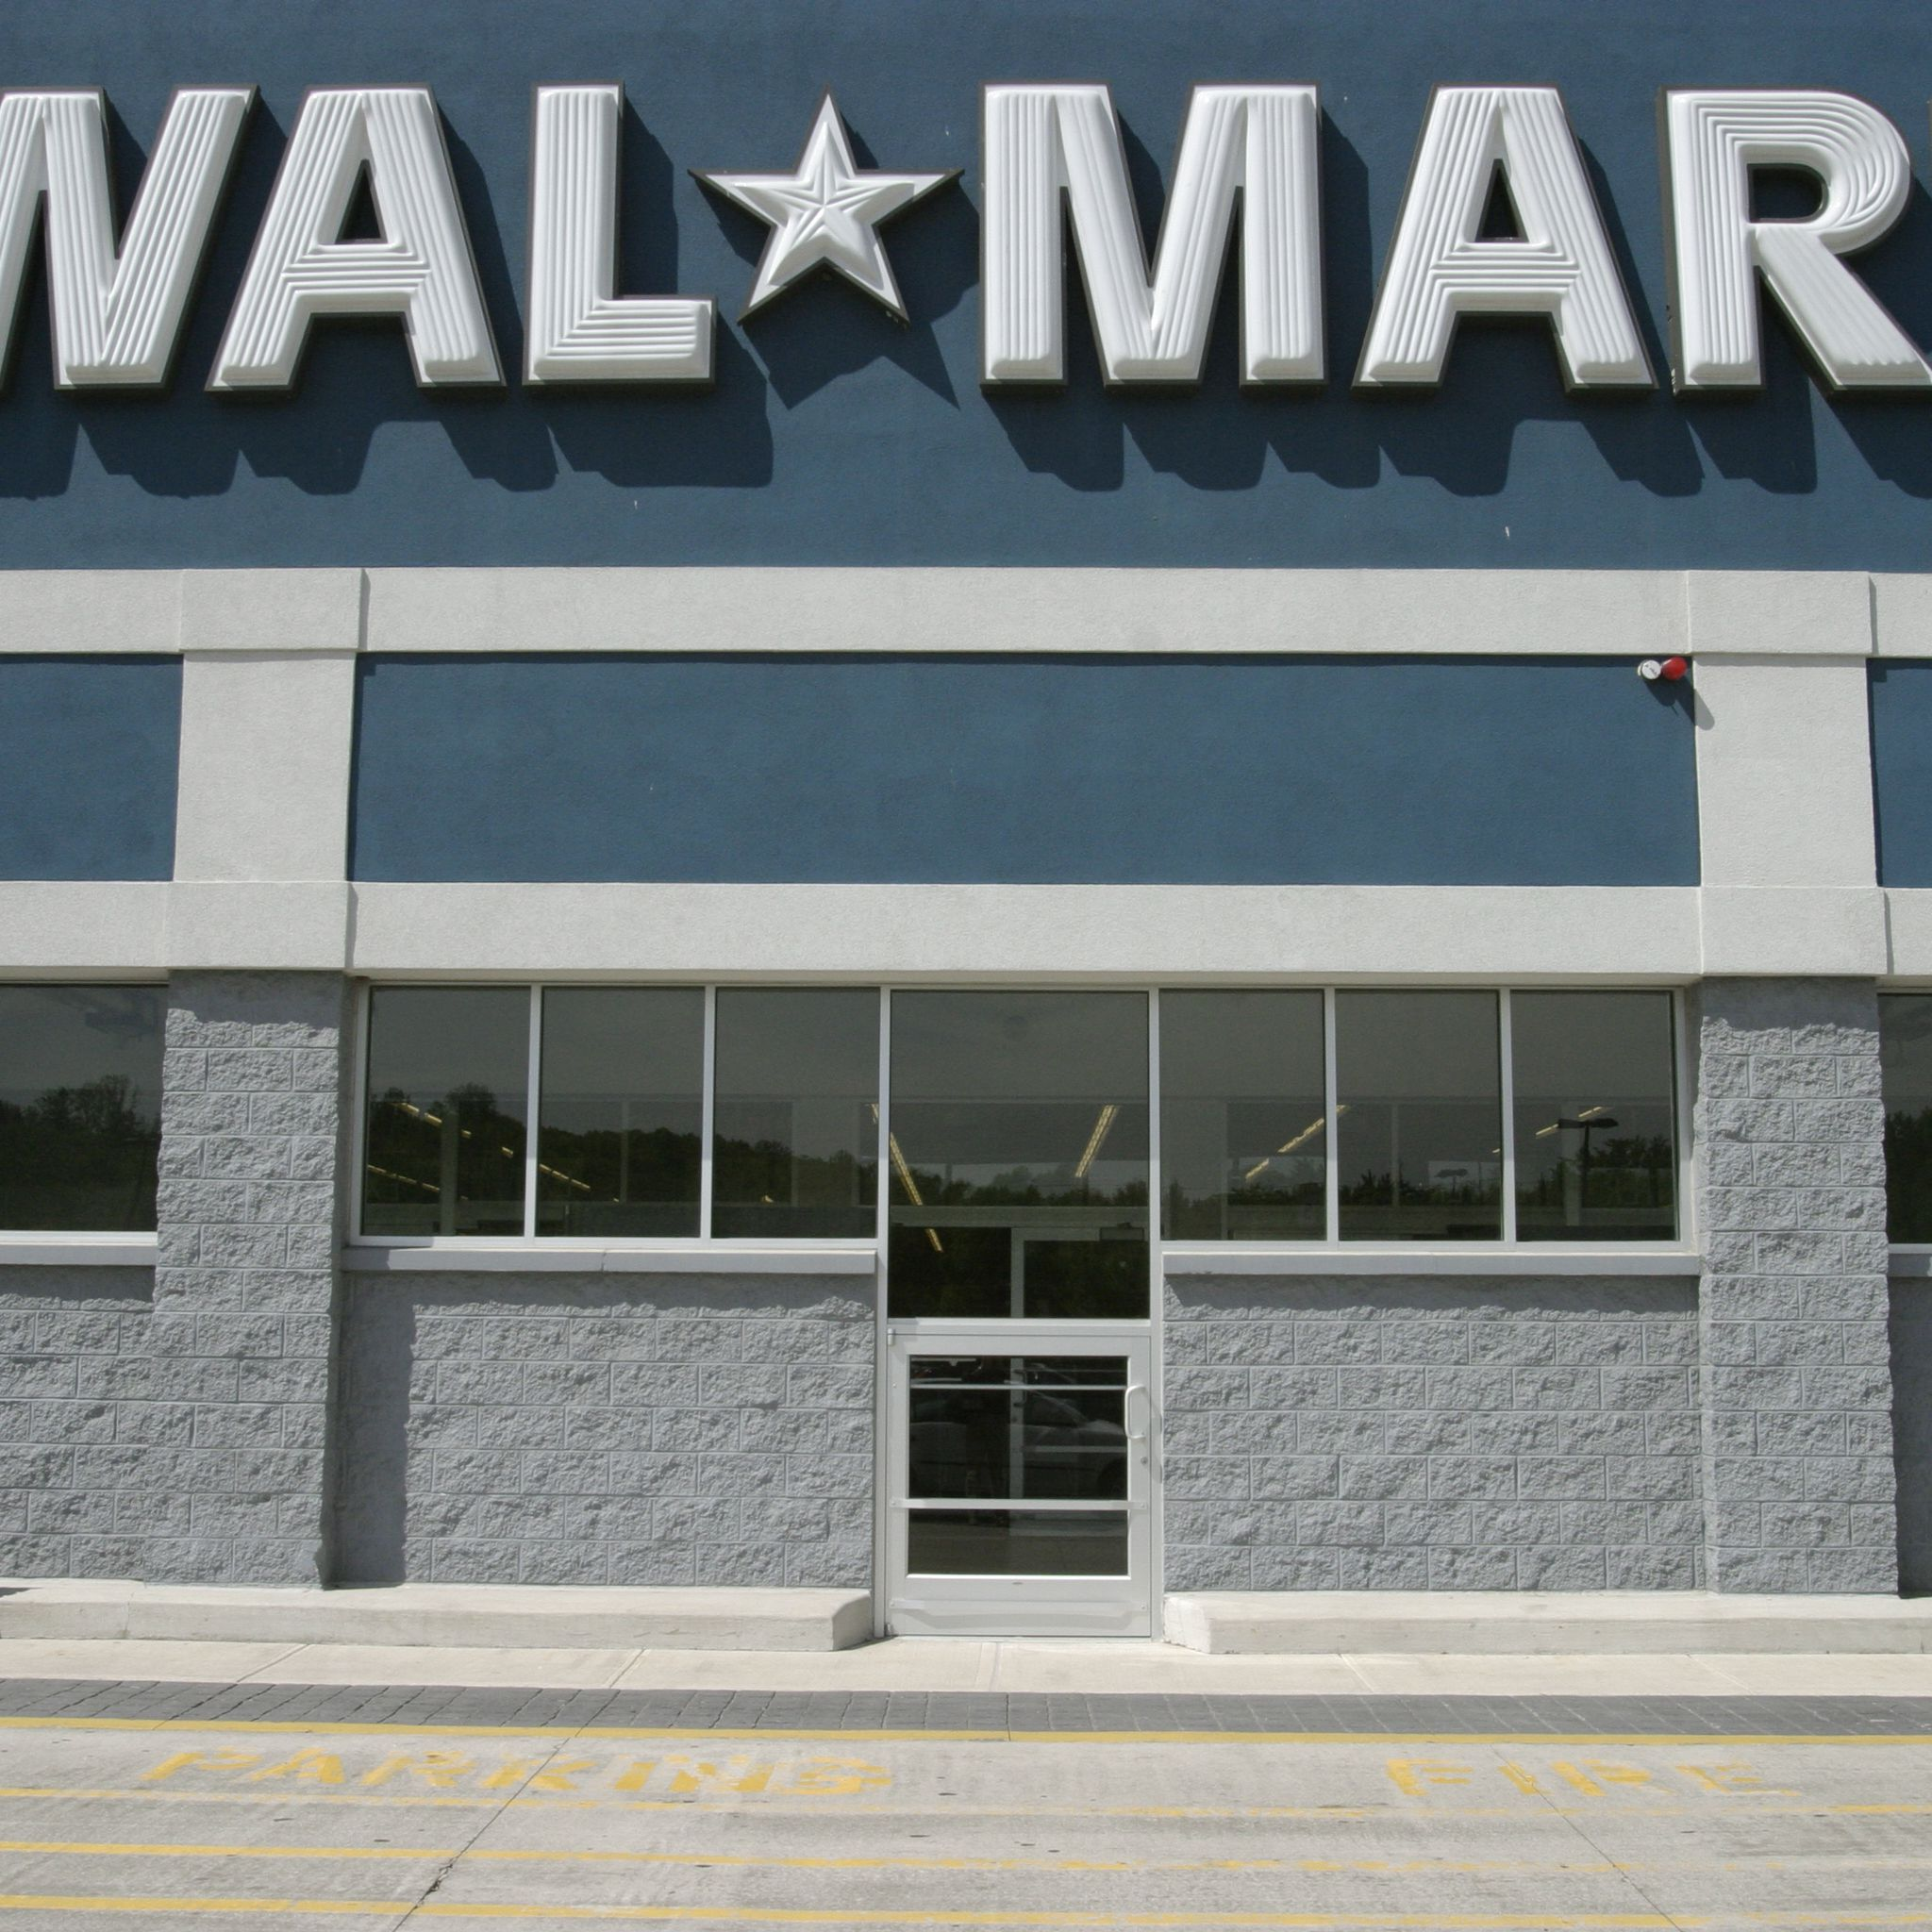 Walmart Ethics Shown in Class Action Employee Lawsuits